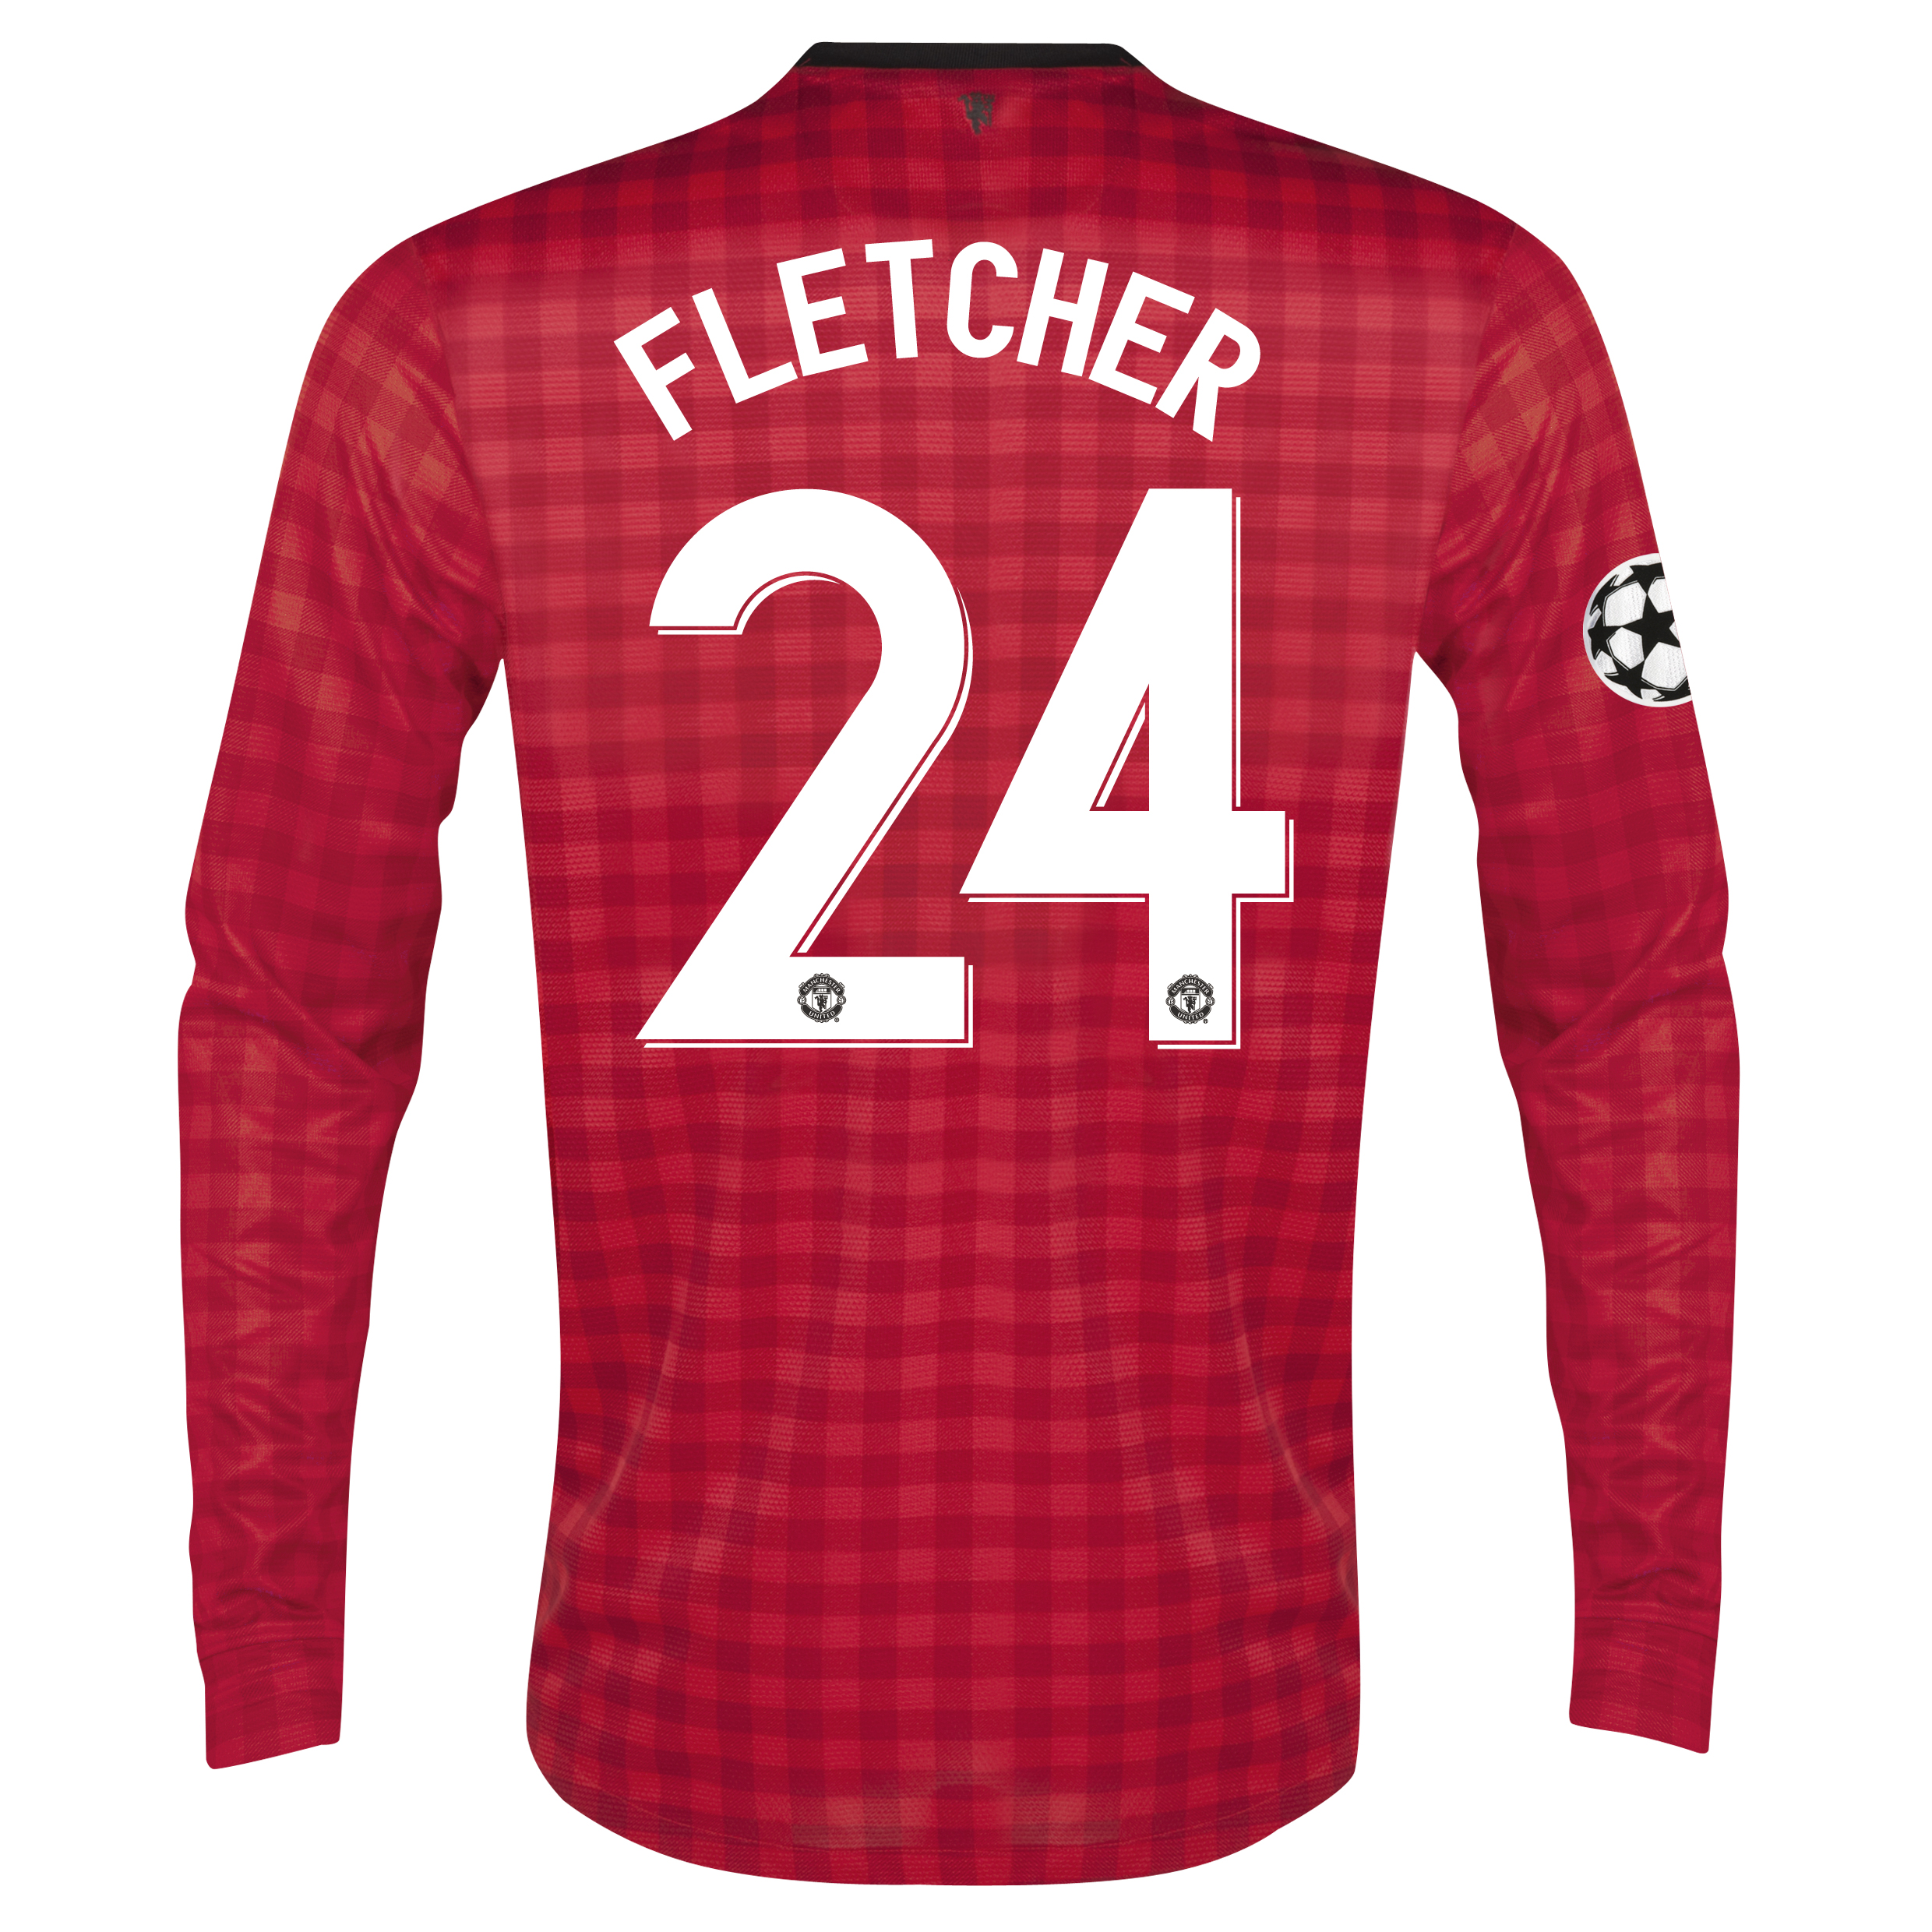 Man United UEFA Champions League Home Shirt 2012/13 - Long Sleeved with Fletcher 24 printing